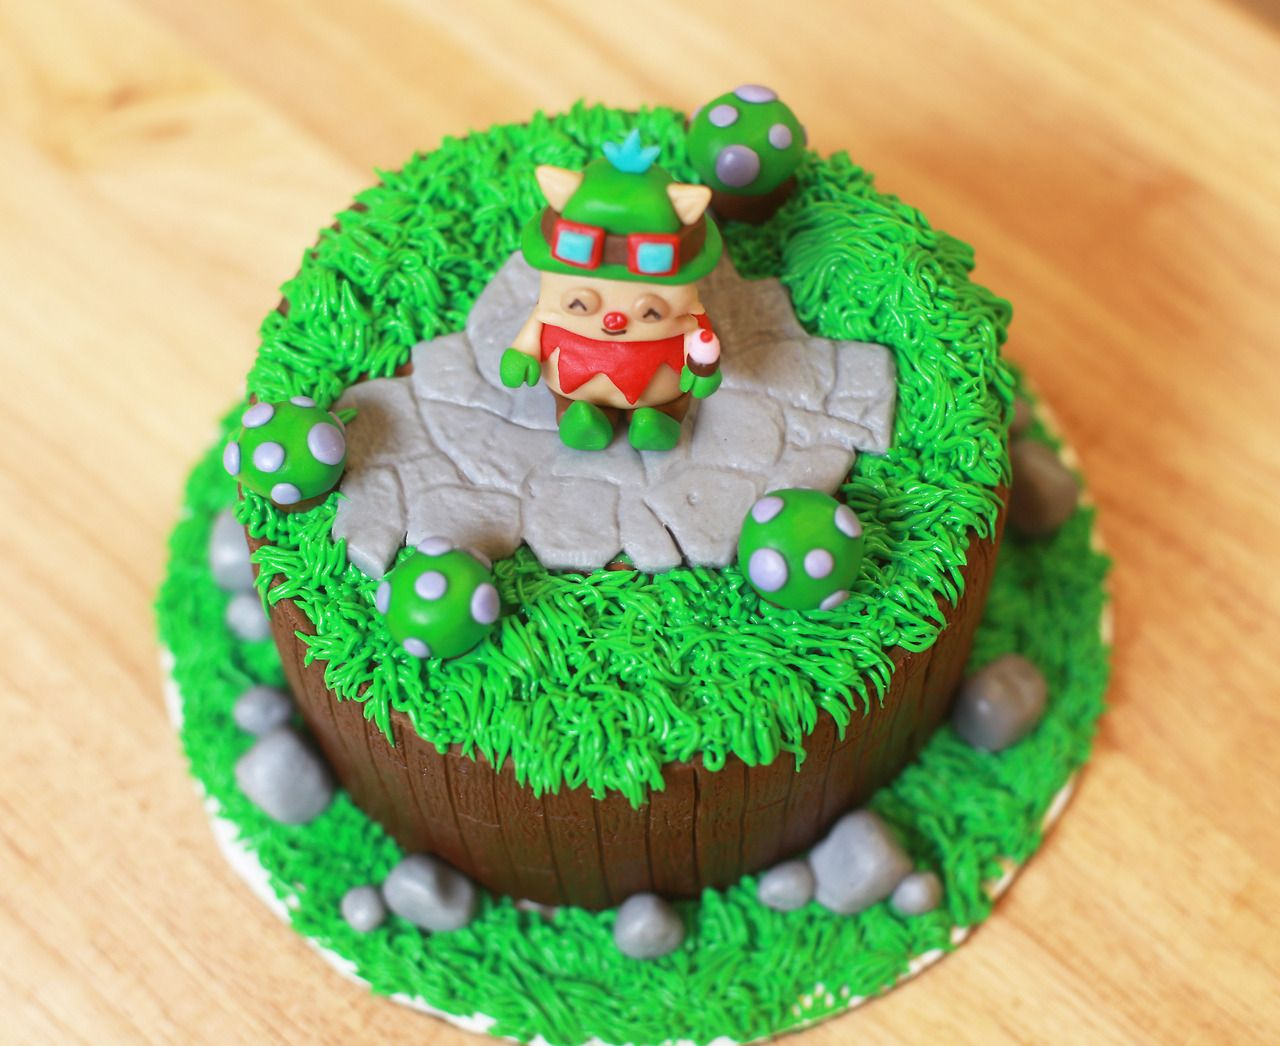 Teemo Cake from League of Legends   Cake, Cake decorating ...